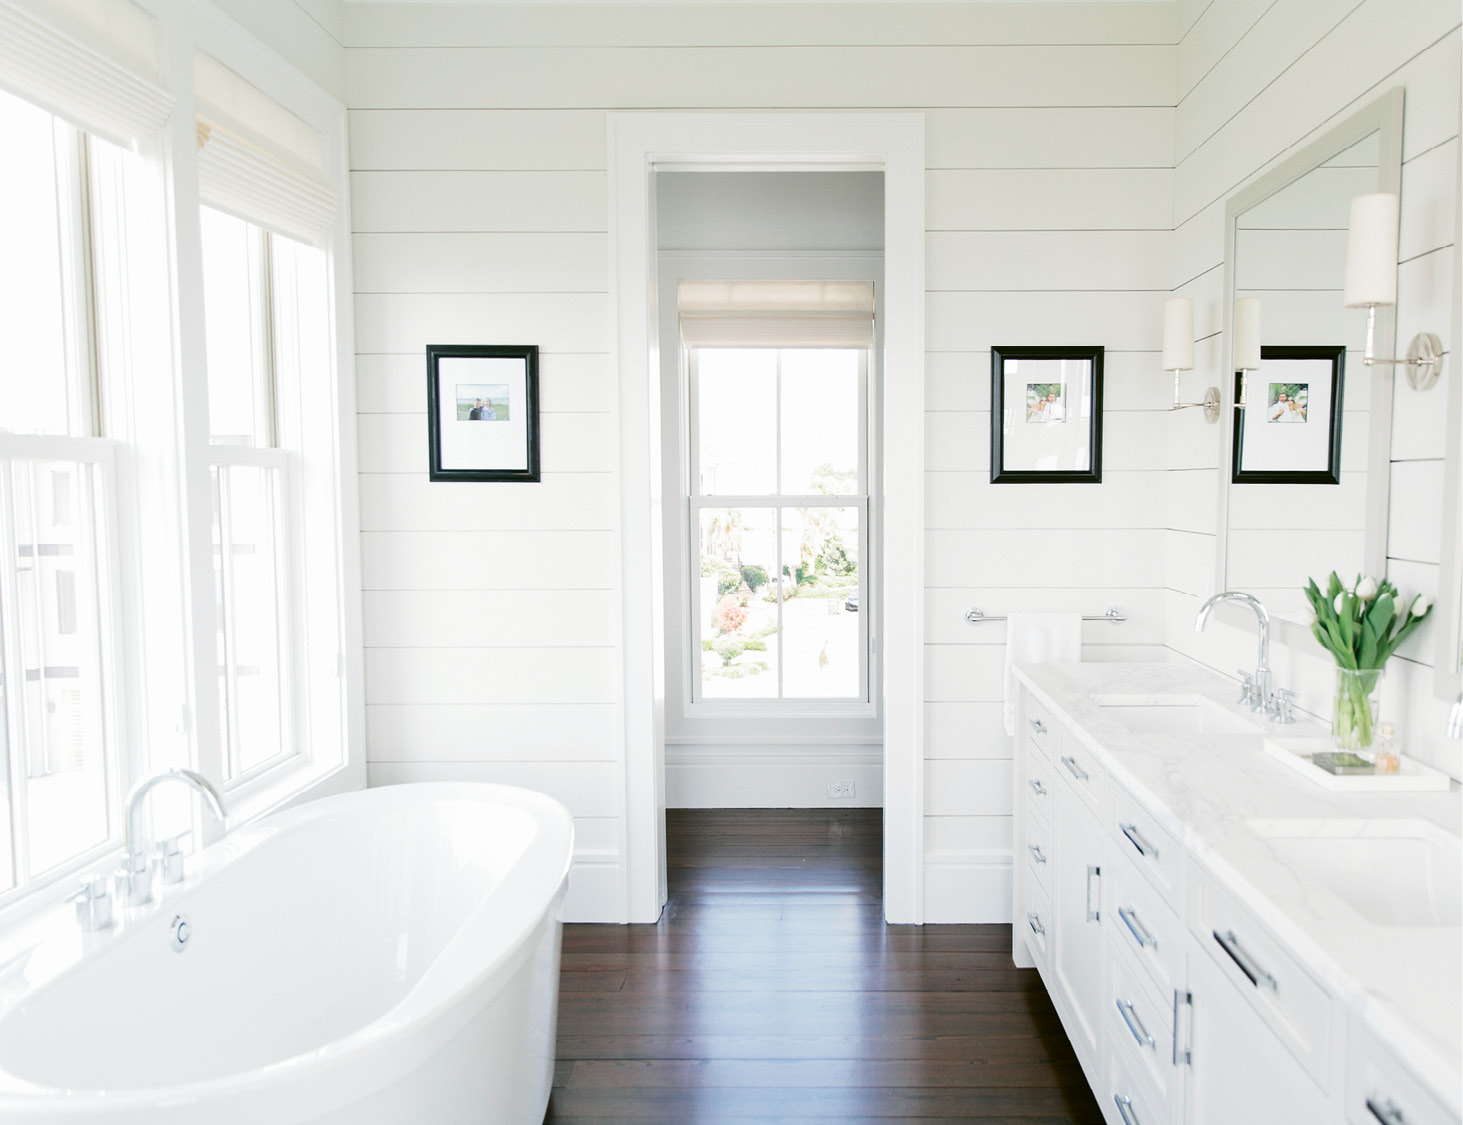 Mid-century furnishings feel clean-lined and simple, while shiplap walls in the master bath nod to coastal cottages.